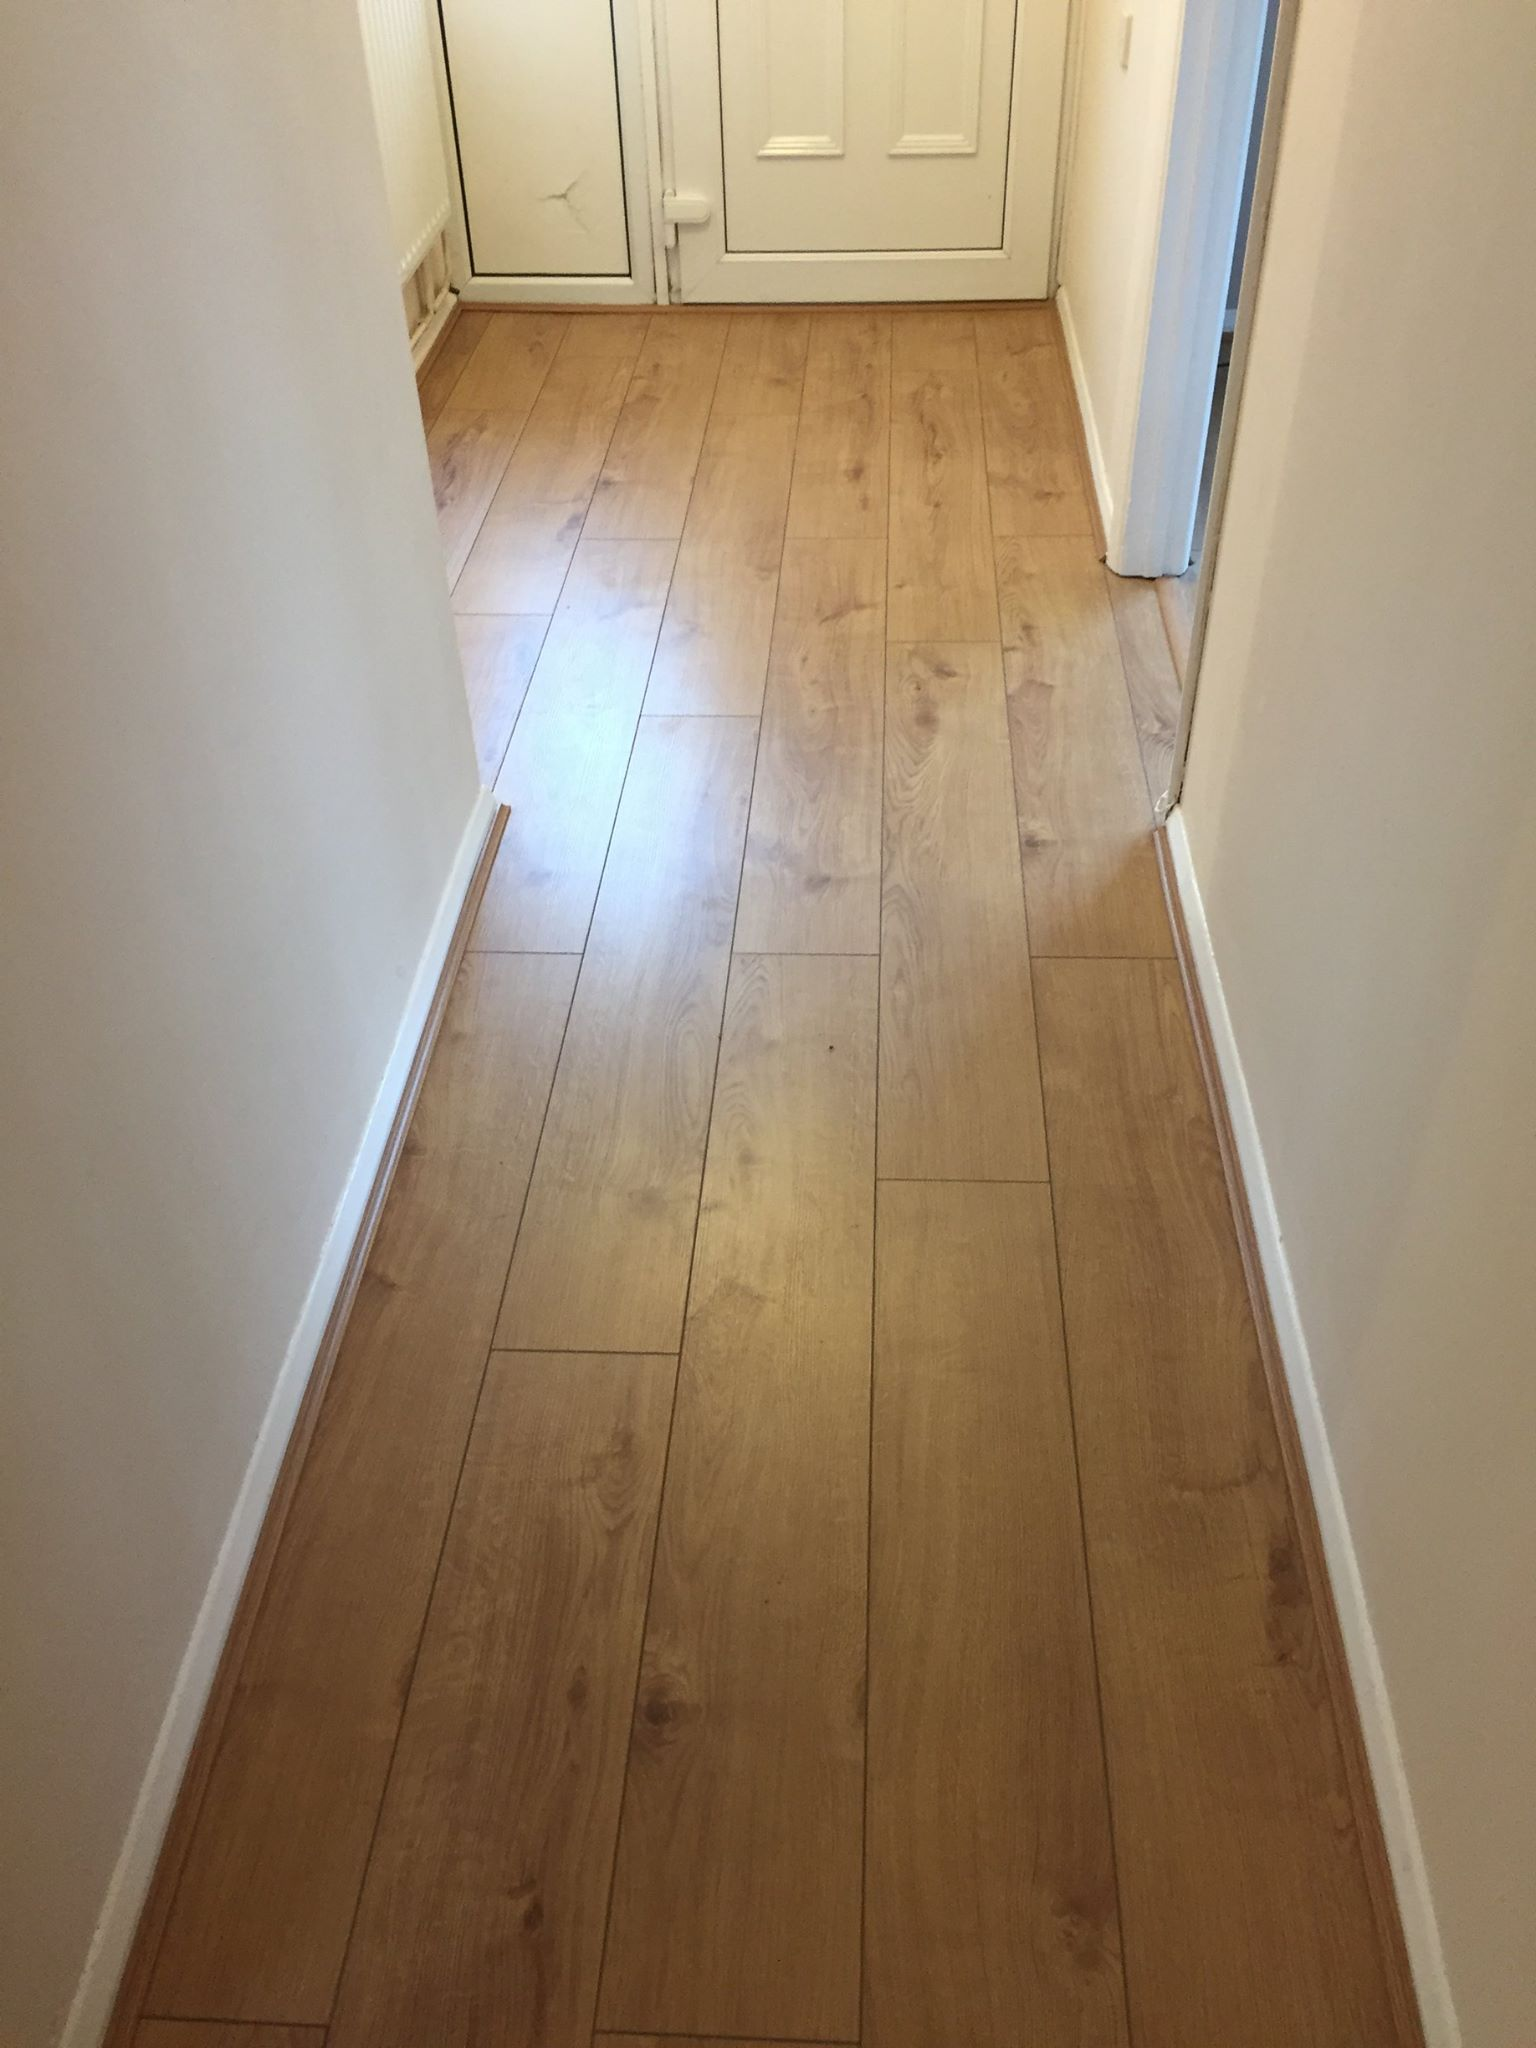 Laminate Flooring Services : Laminate flooring installation bicester property services